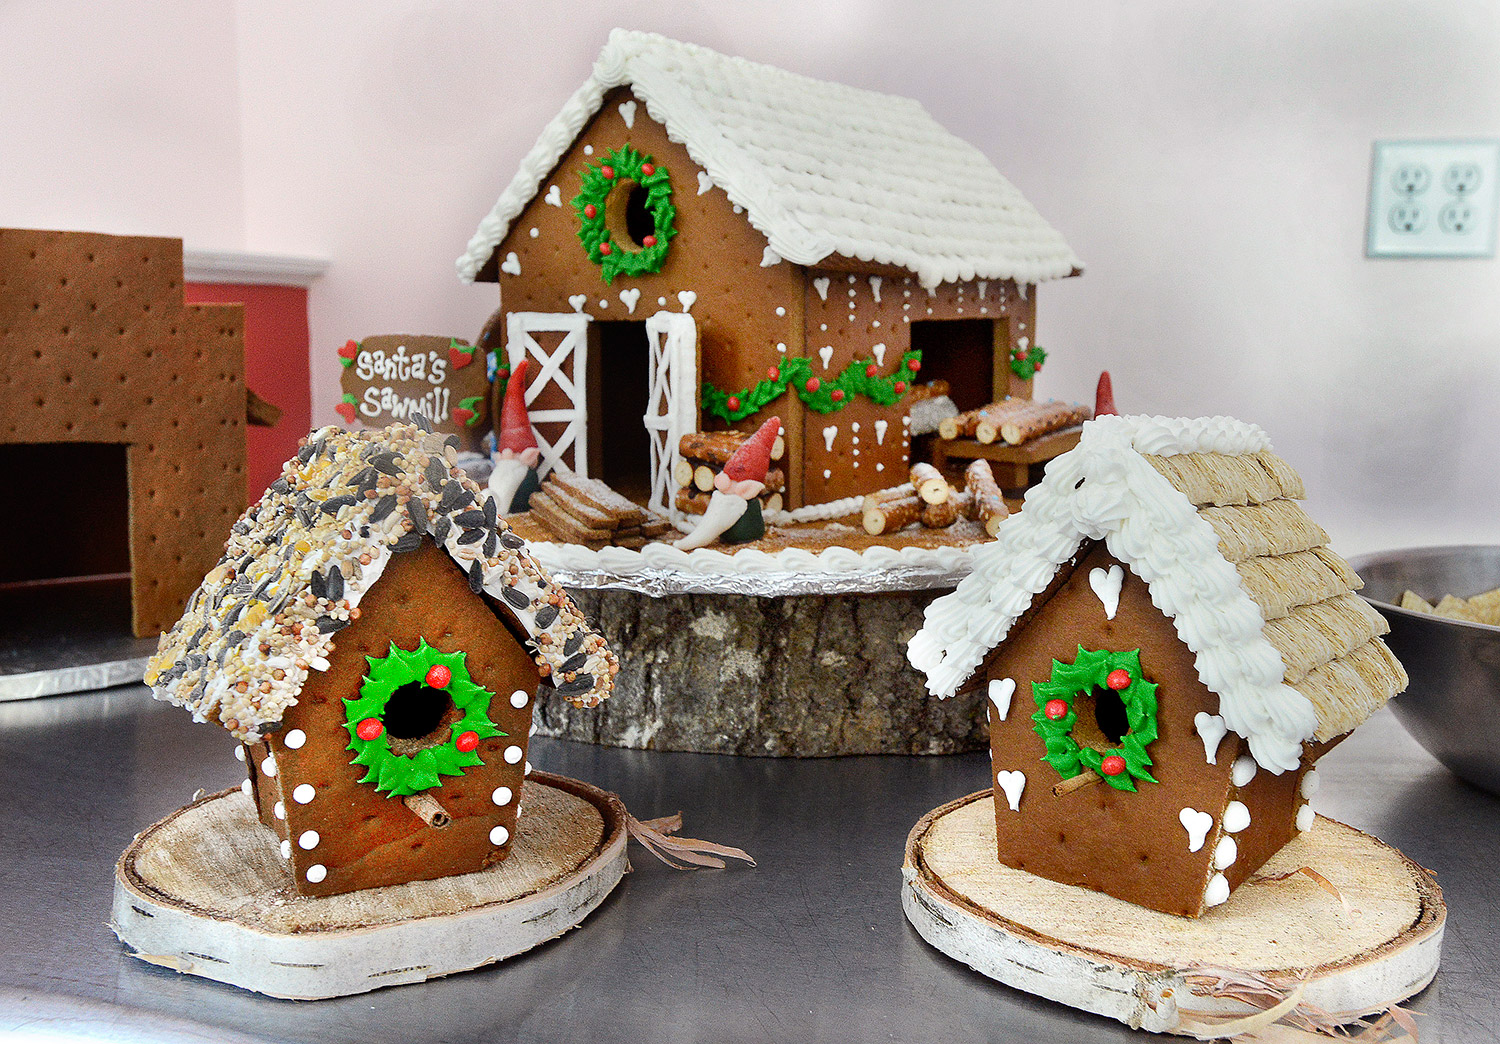 Dan Cake Artist Maine : Lisa Mae Parker s Cakes for All Seasons - The Portland ...